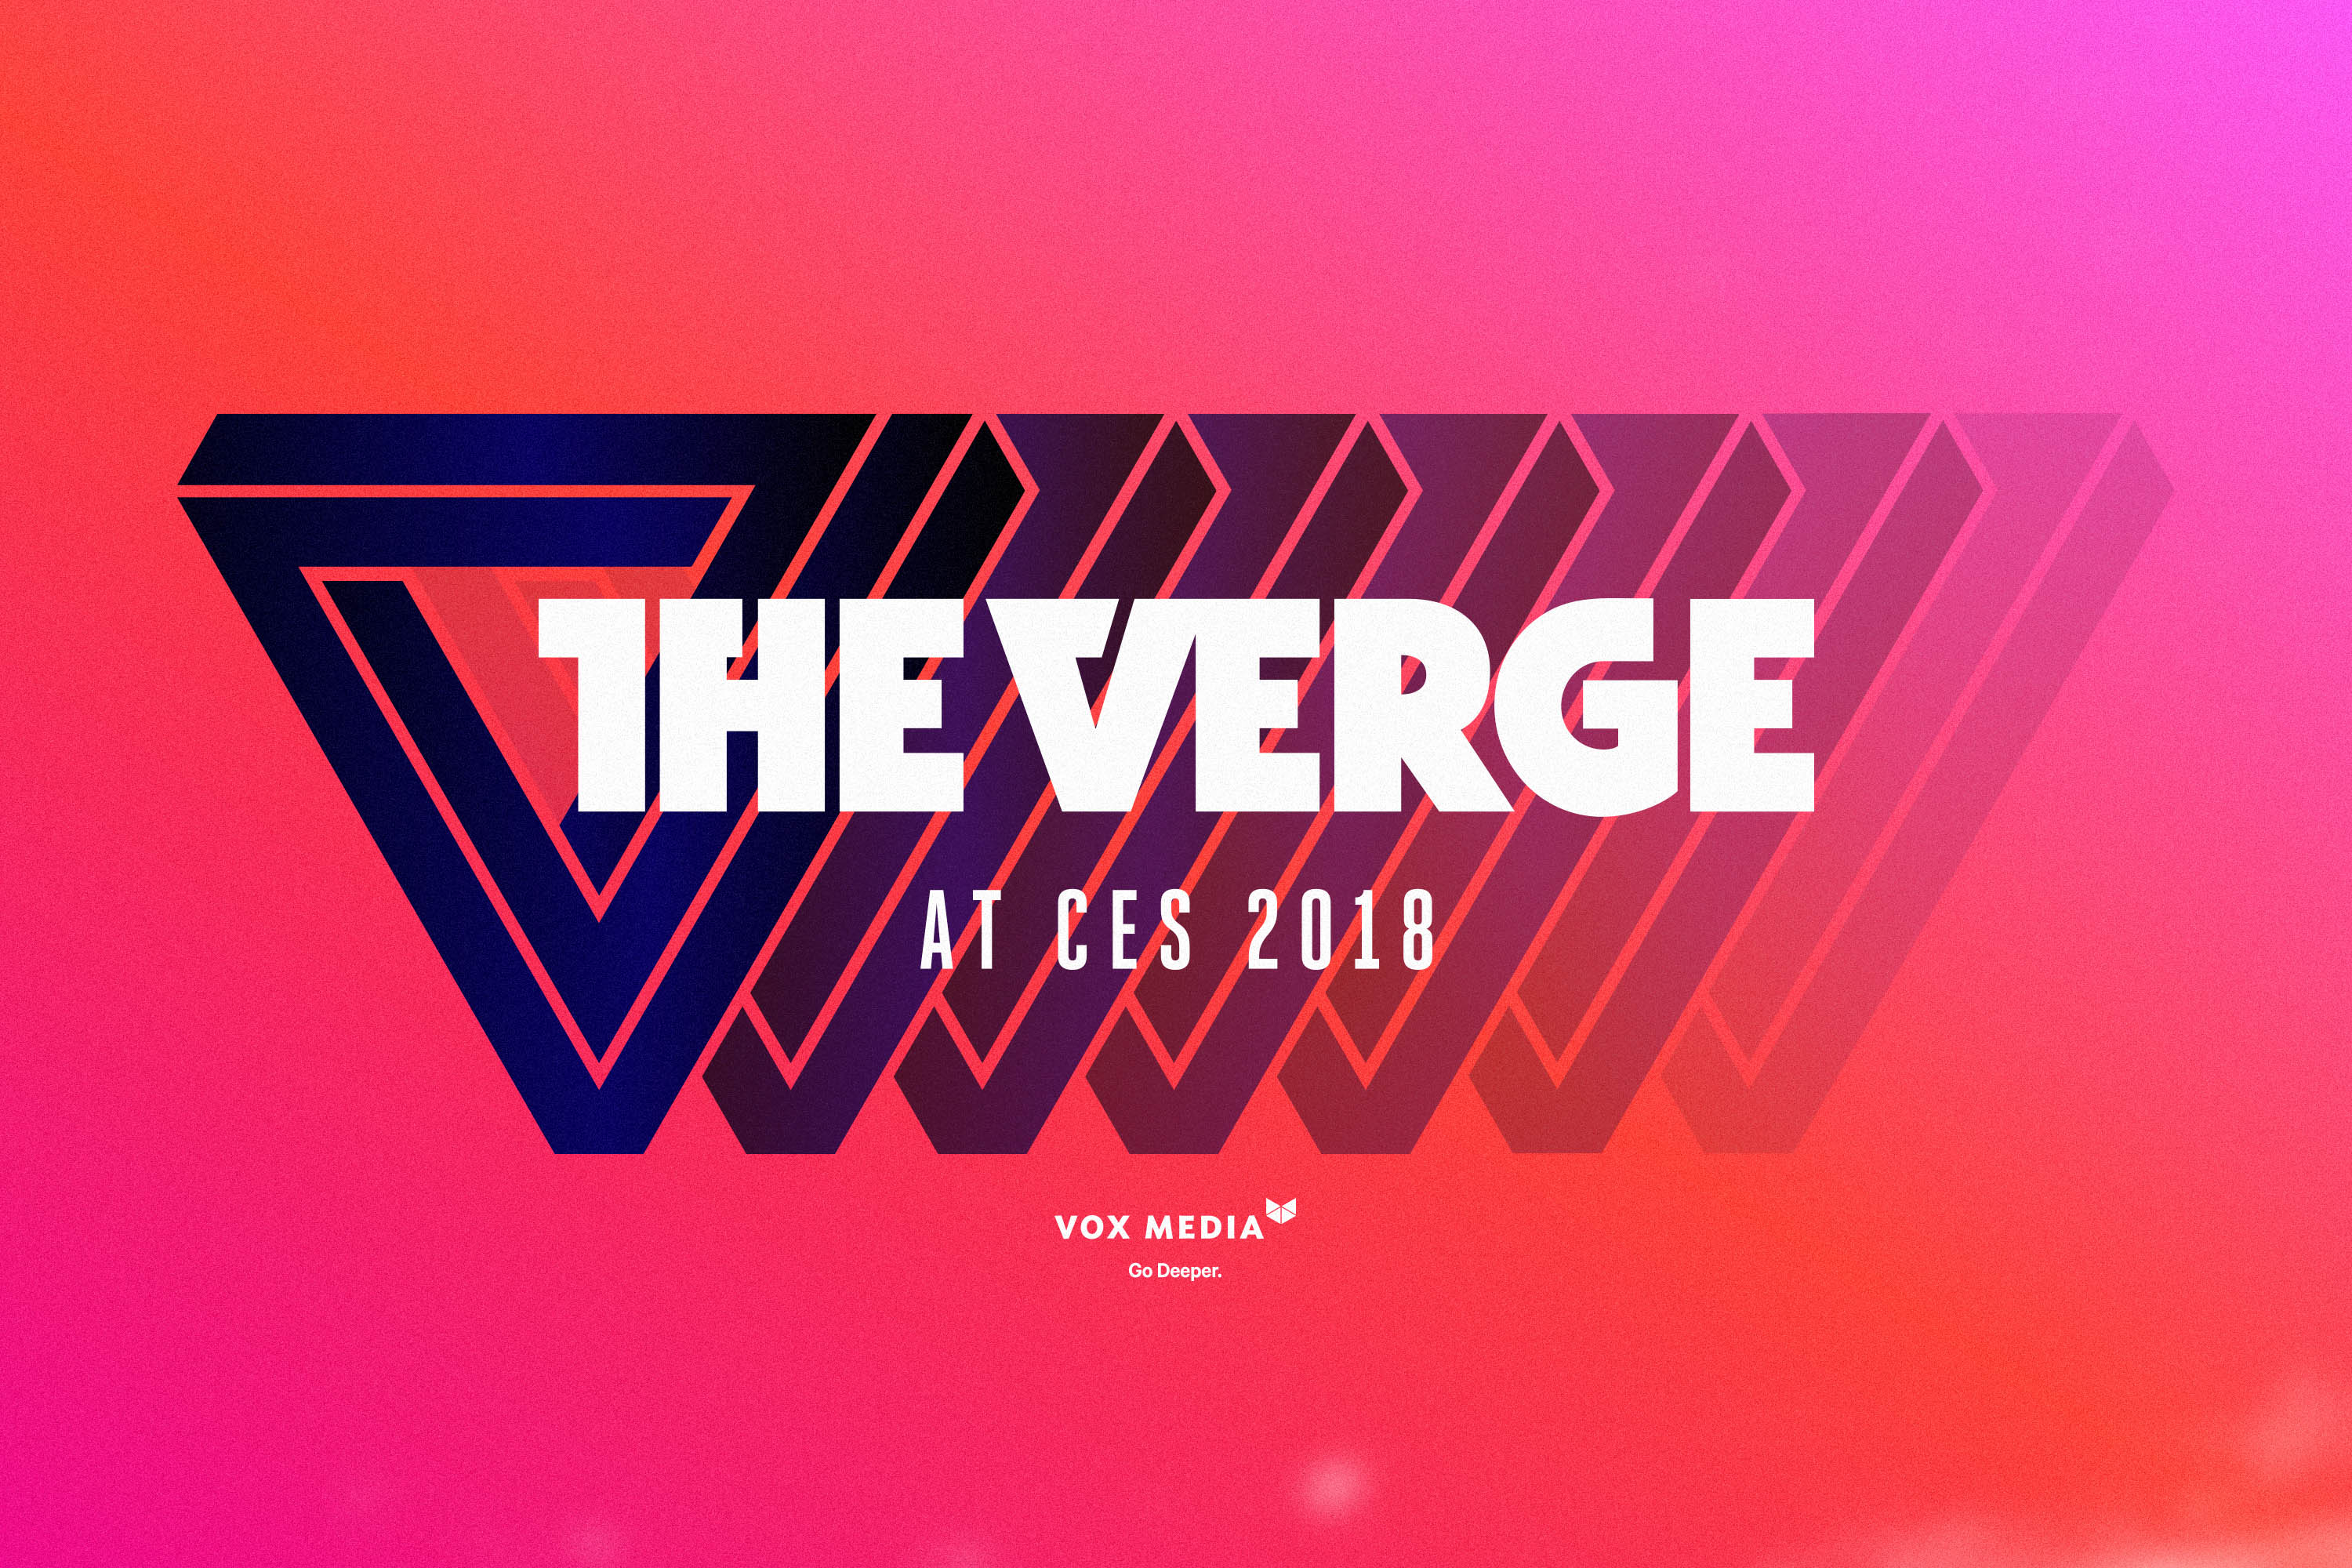 The Verge at CES 2018 lock-up.